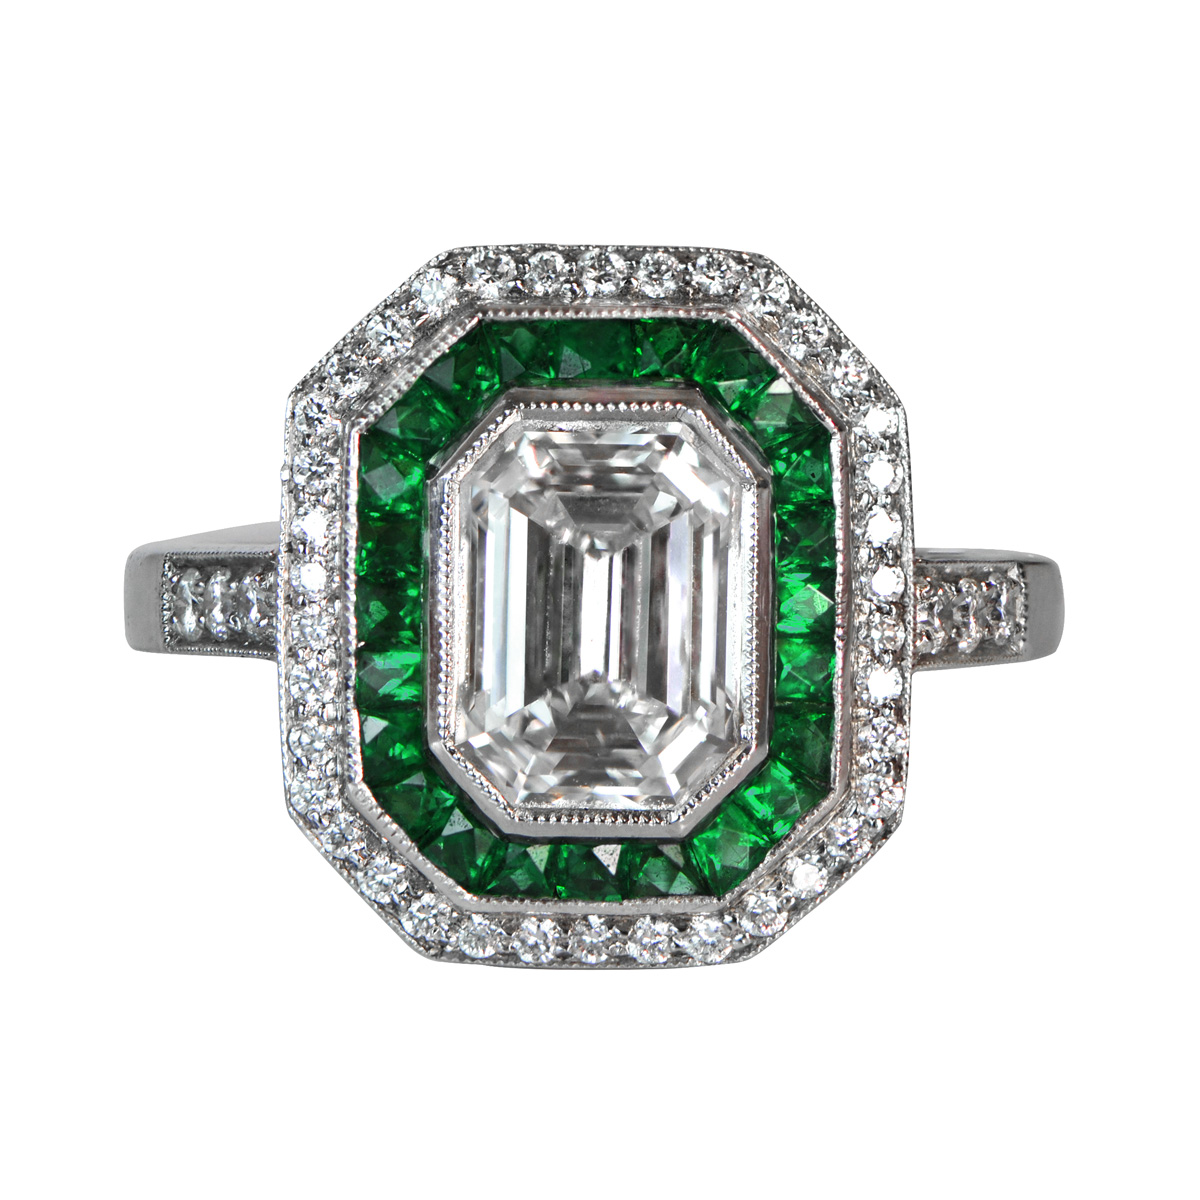 Emerald and diamonds 4040412 estate diamond jewelry for Emerald and diamond wedding ring